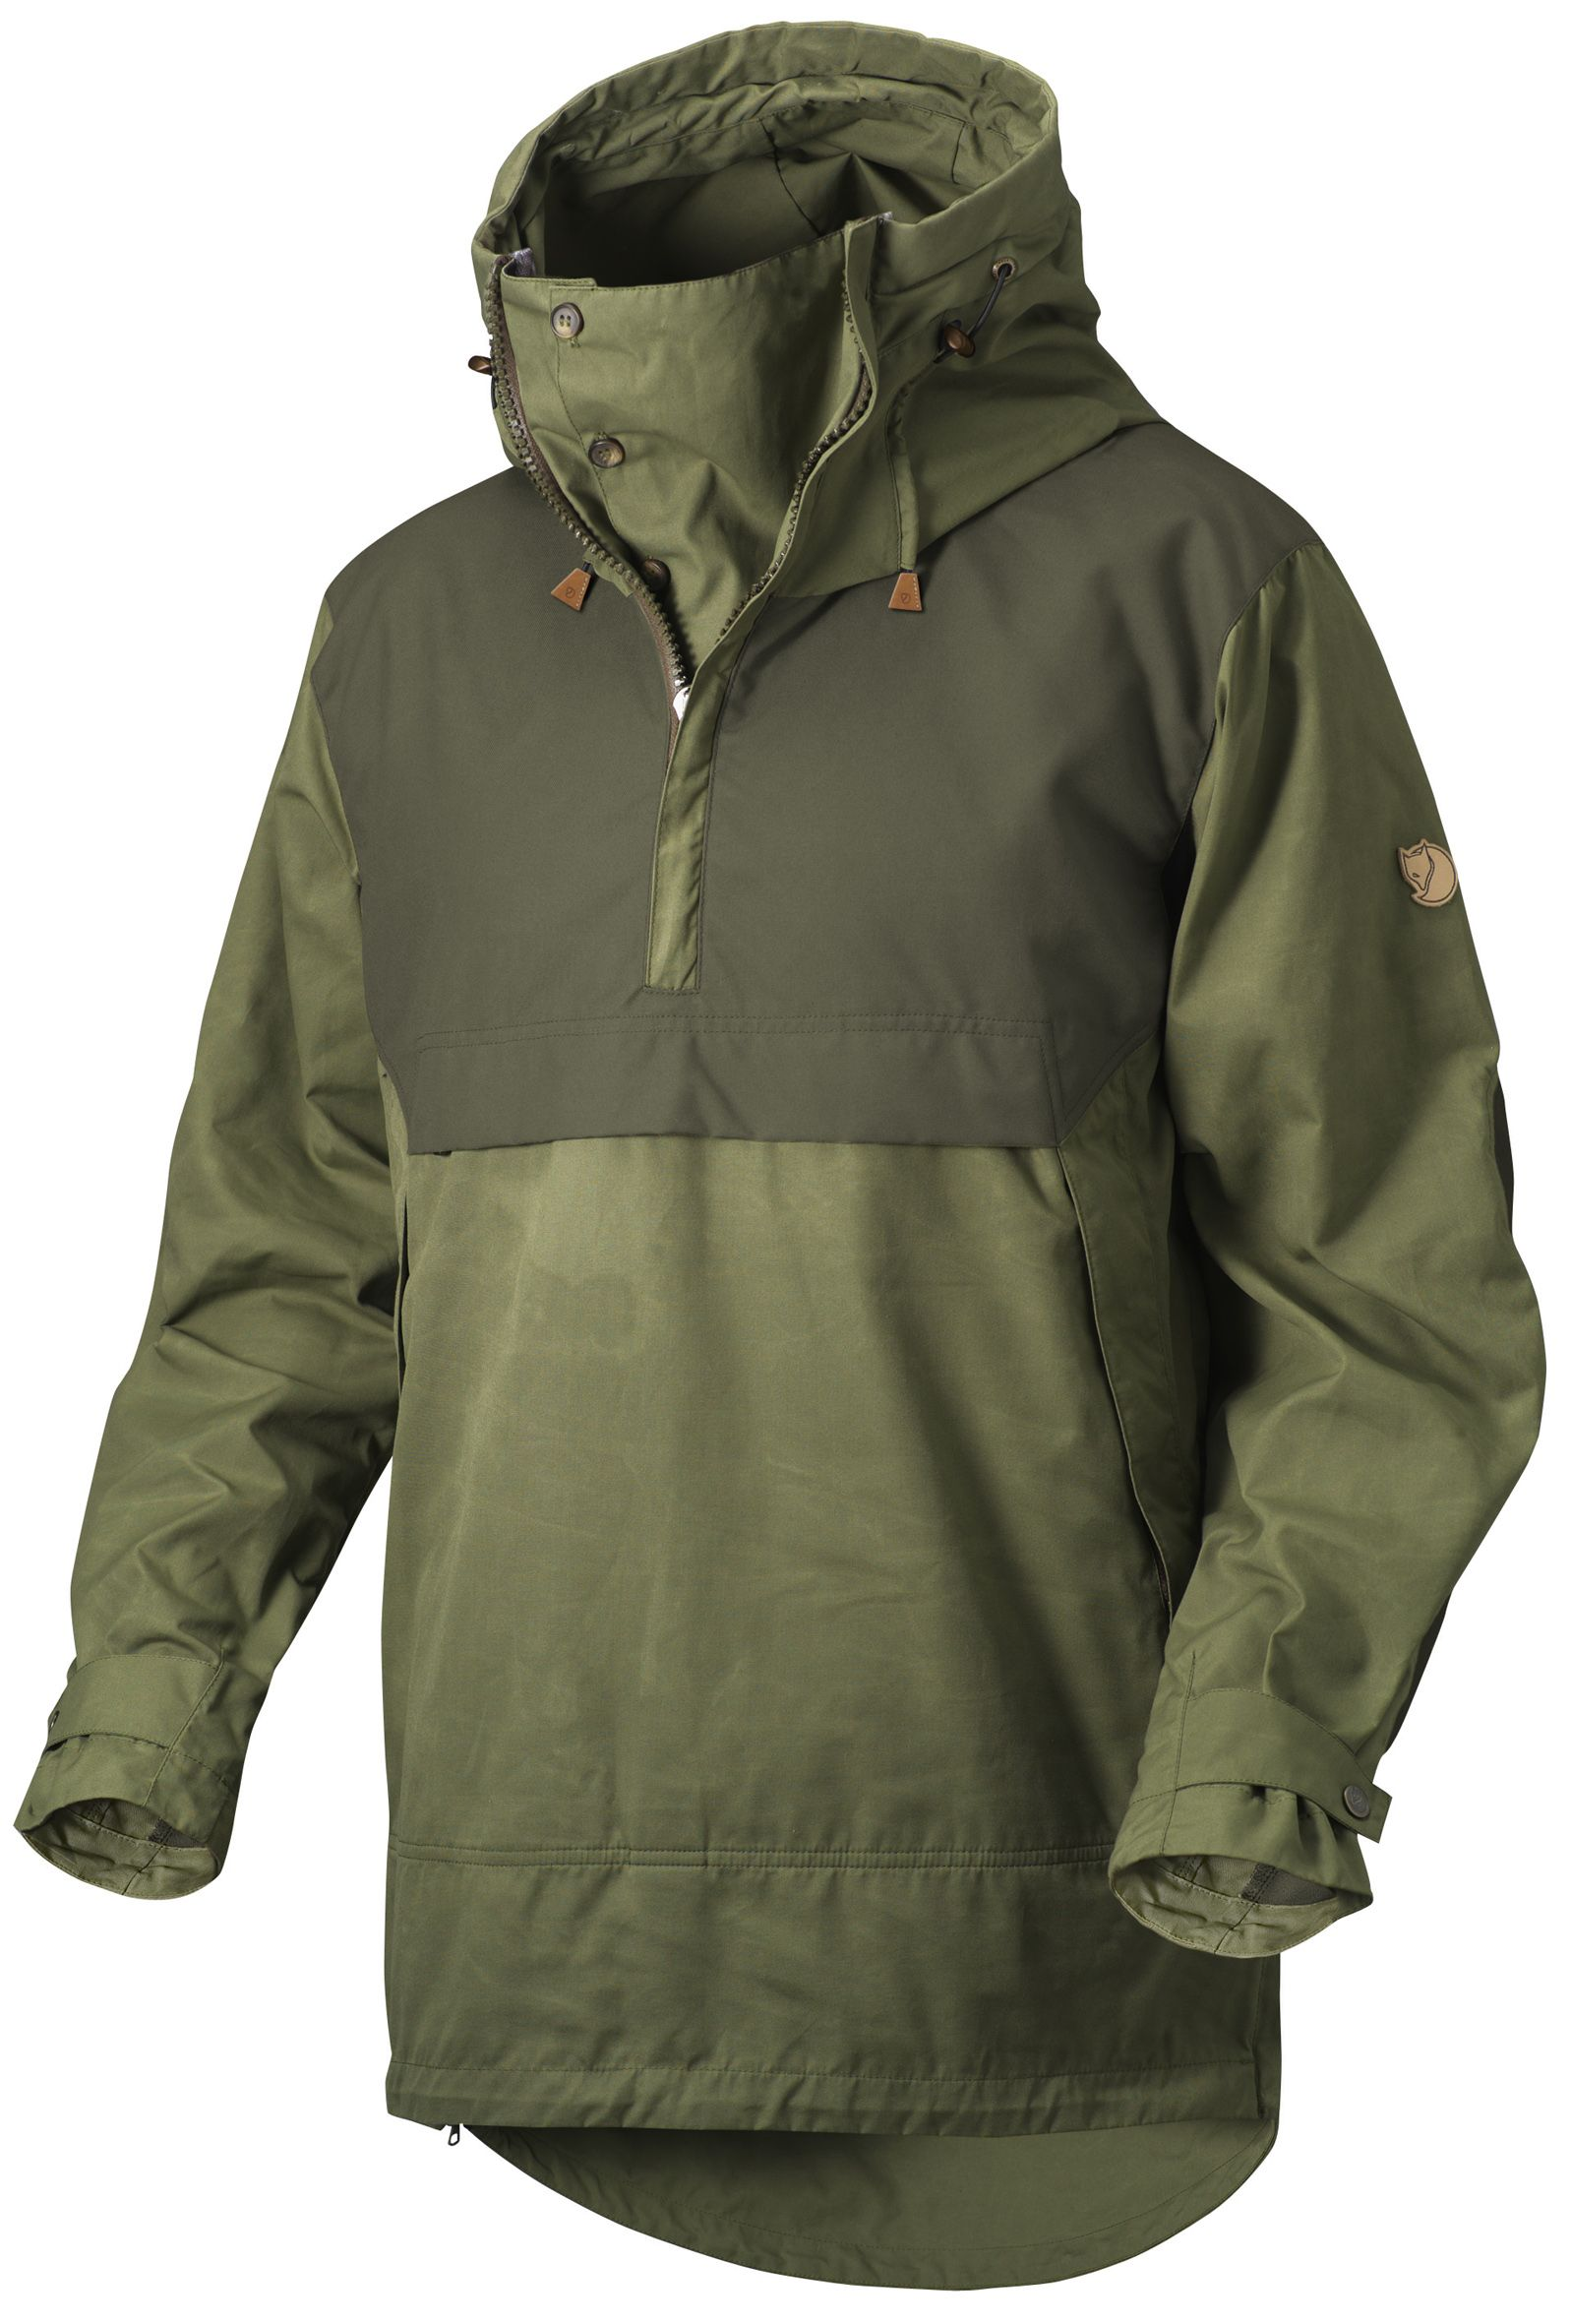 AnorakThey Fjallraven Such JacketsOutdoor Nice Make CBrdeox